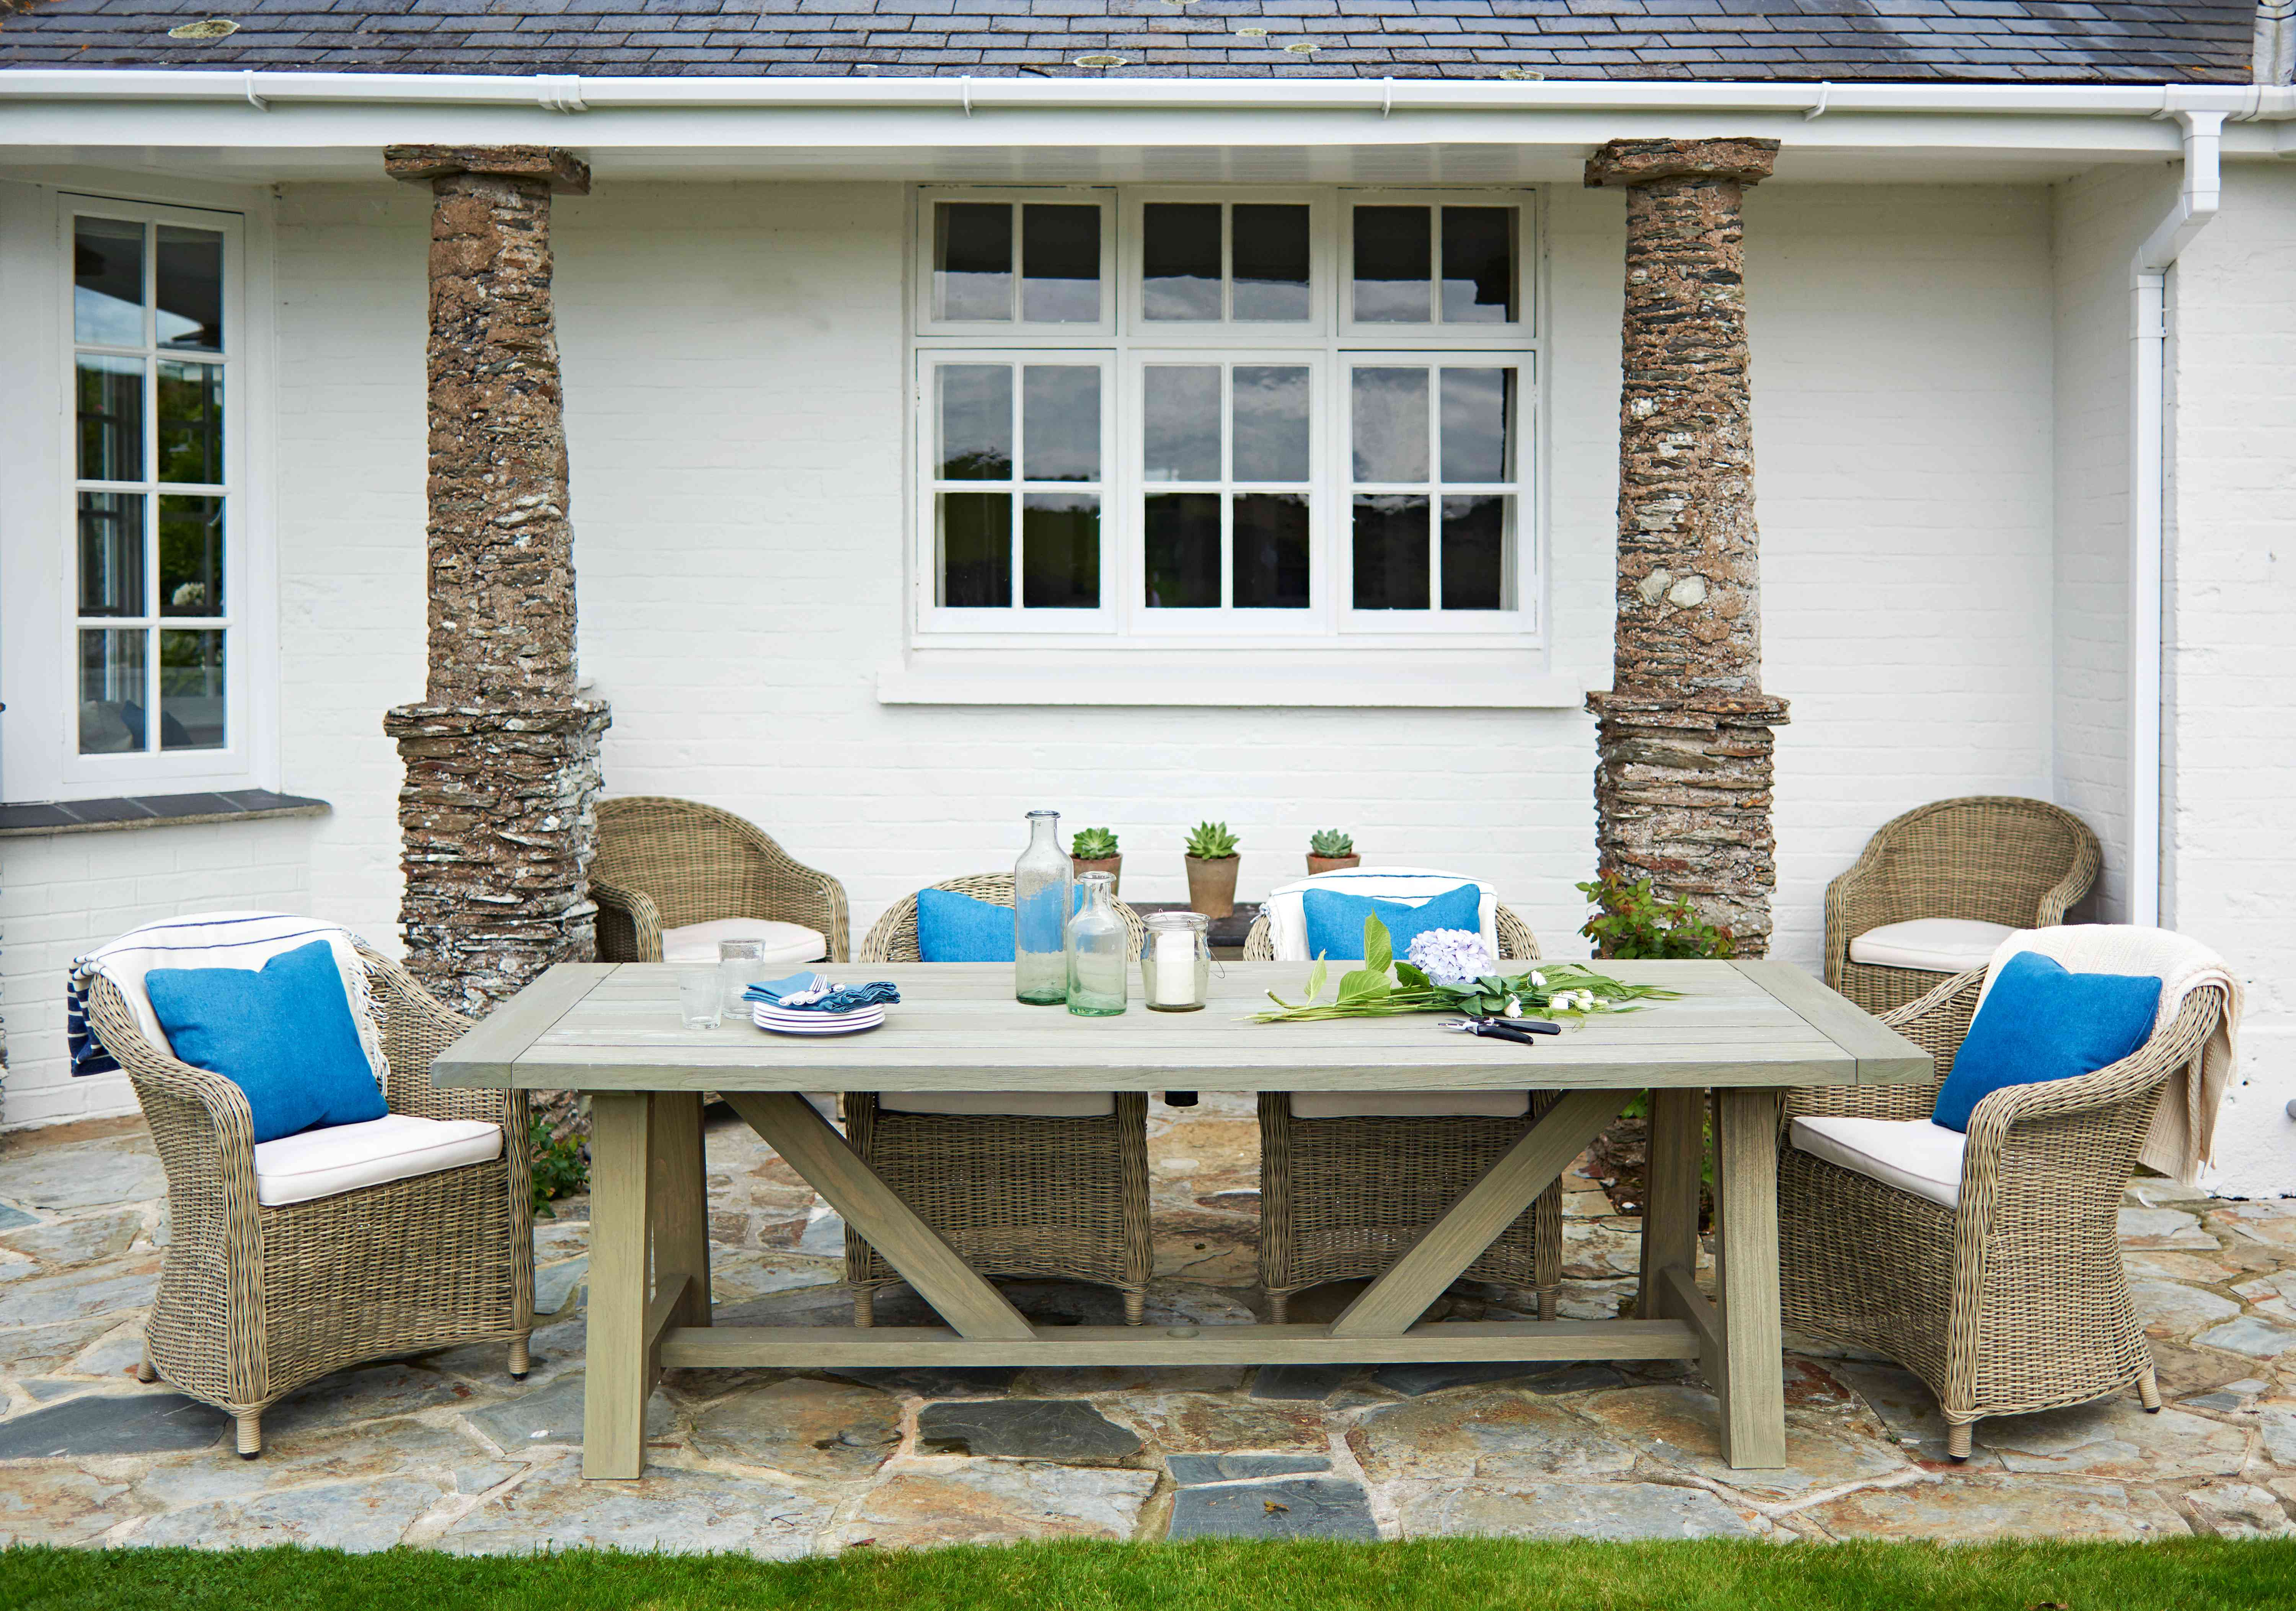 Emma Sims-Hilditch's patio furniture at her Cornwall home